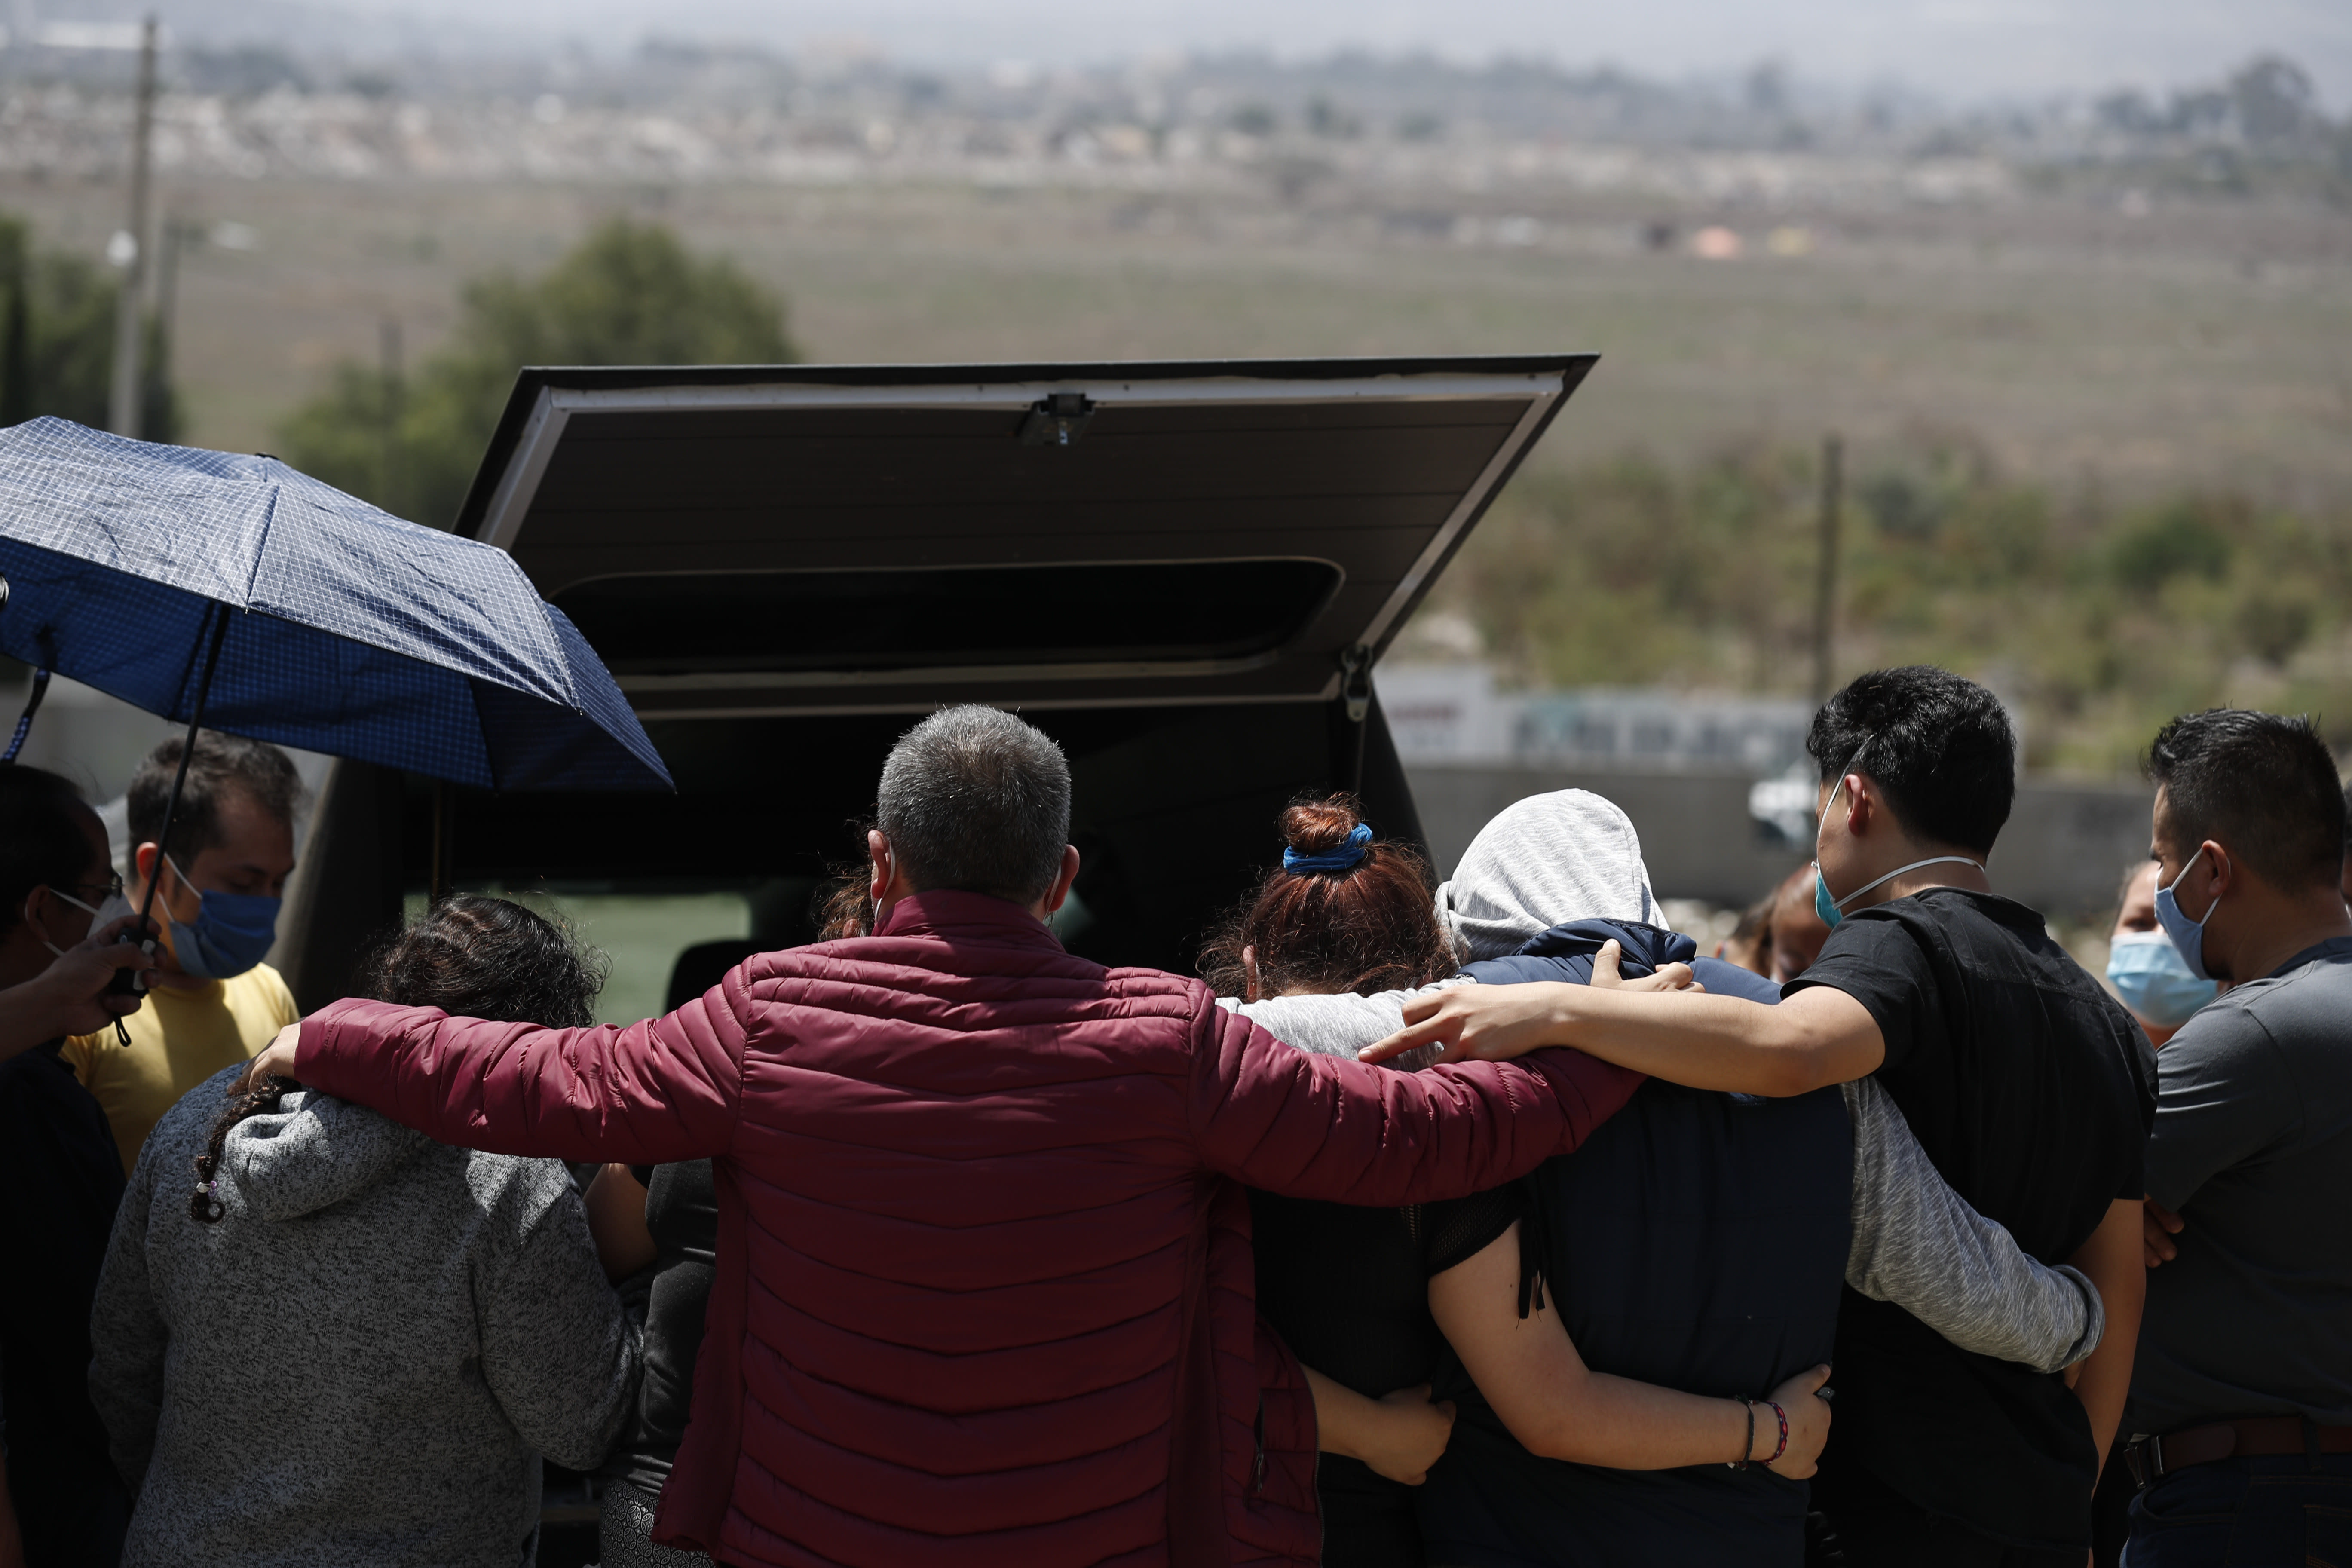 Family members gather to mourn at the back of the hearse, as they prepare to bury a woman who died of suspected COVID-19, in a section of the Municipal Cemetery of Valle de Chalco opened to accommodate the surge in deaths amid the ongoing coronavirus pandemic, on the outskirts of Mexico City, Thursday, July 2, 2020. (AP Photo/Rebecca Blackwell)